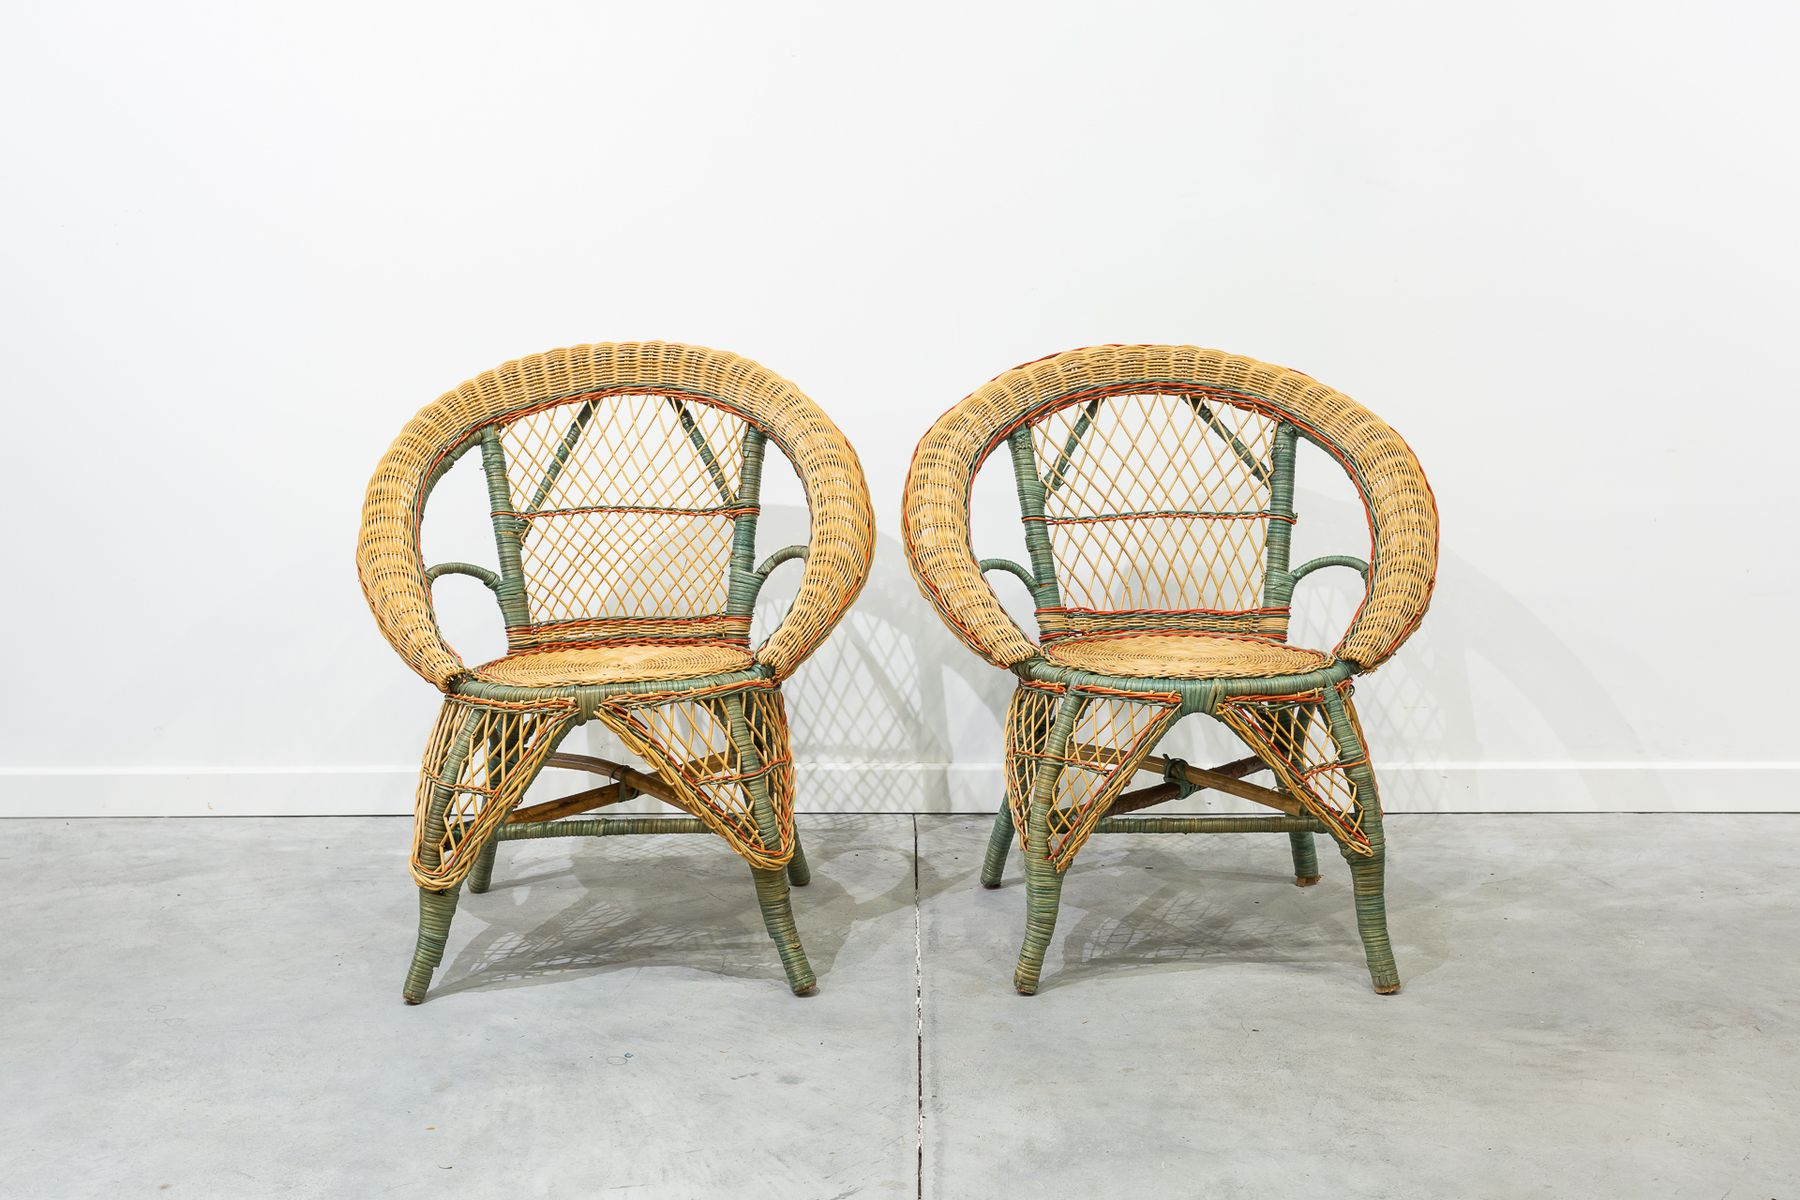 Vintage Wicker Chairs Set Of 2 For Sale At Pamono